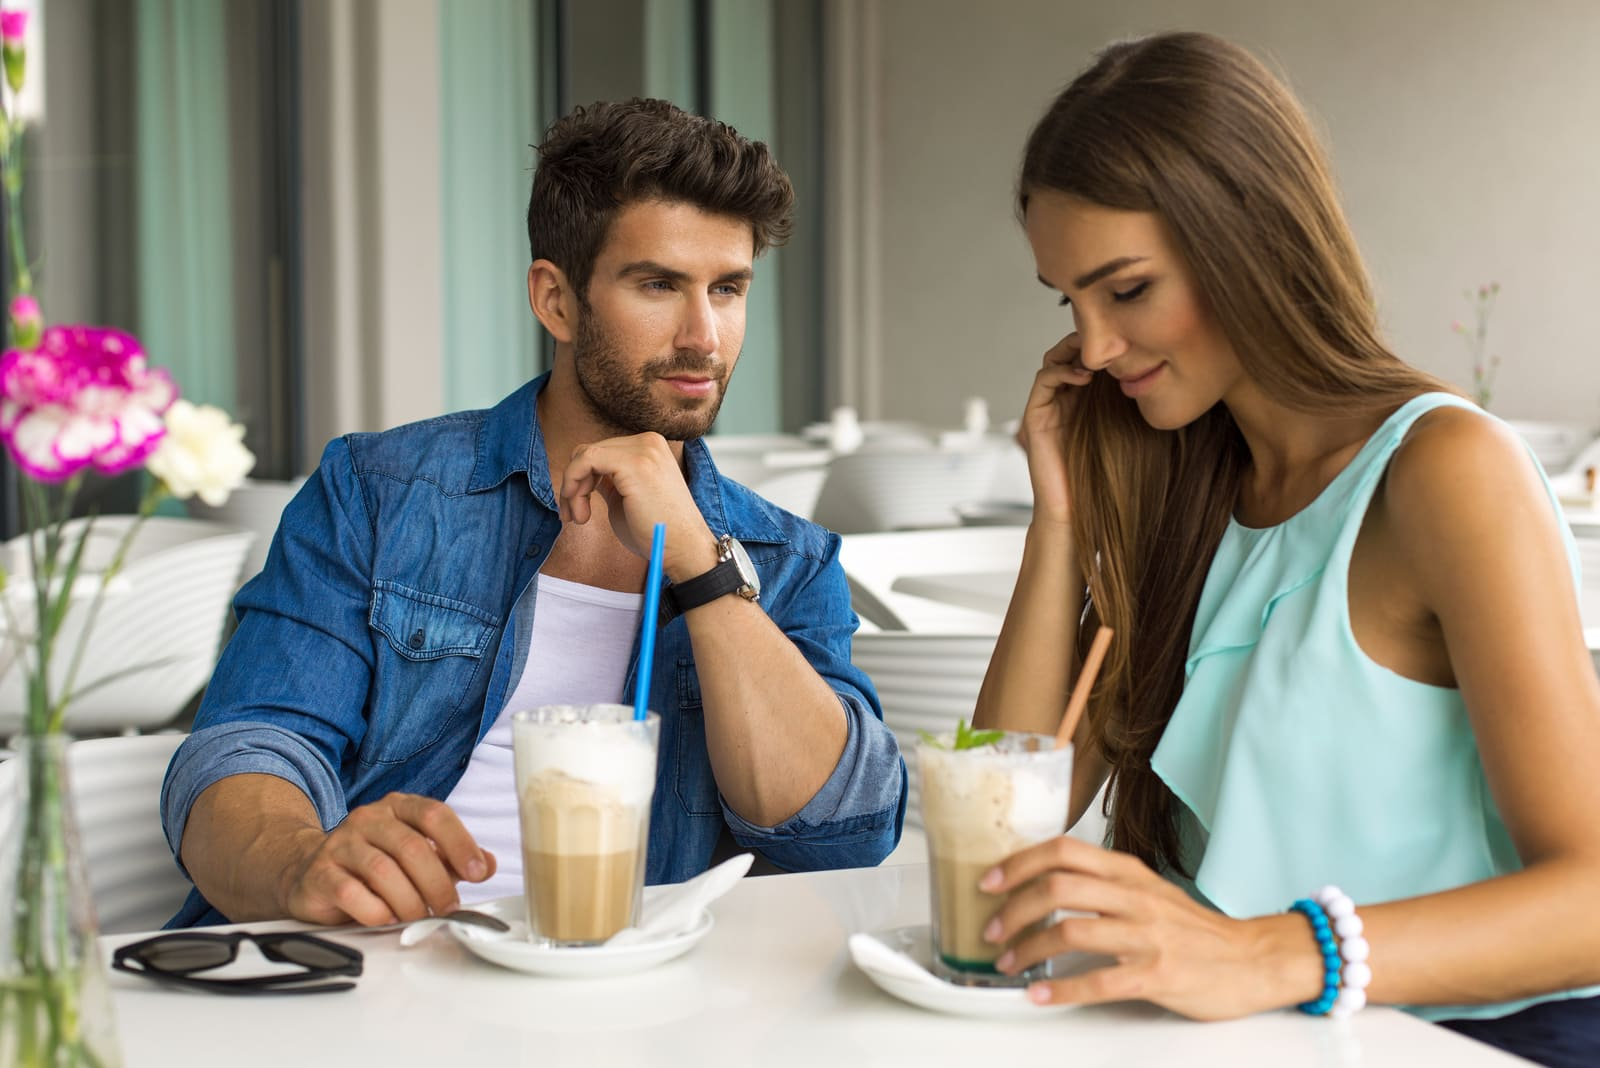 man flirting with young woman at cafe